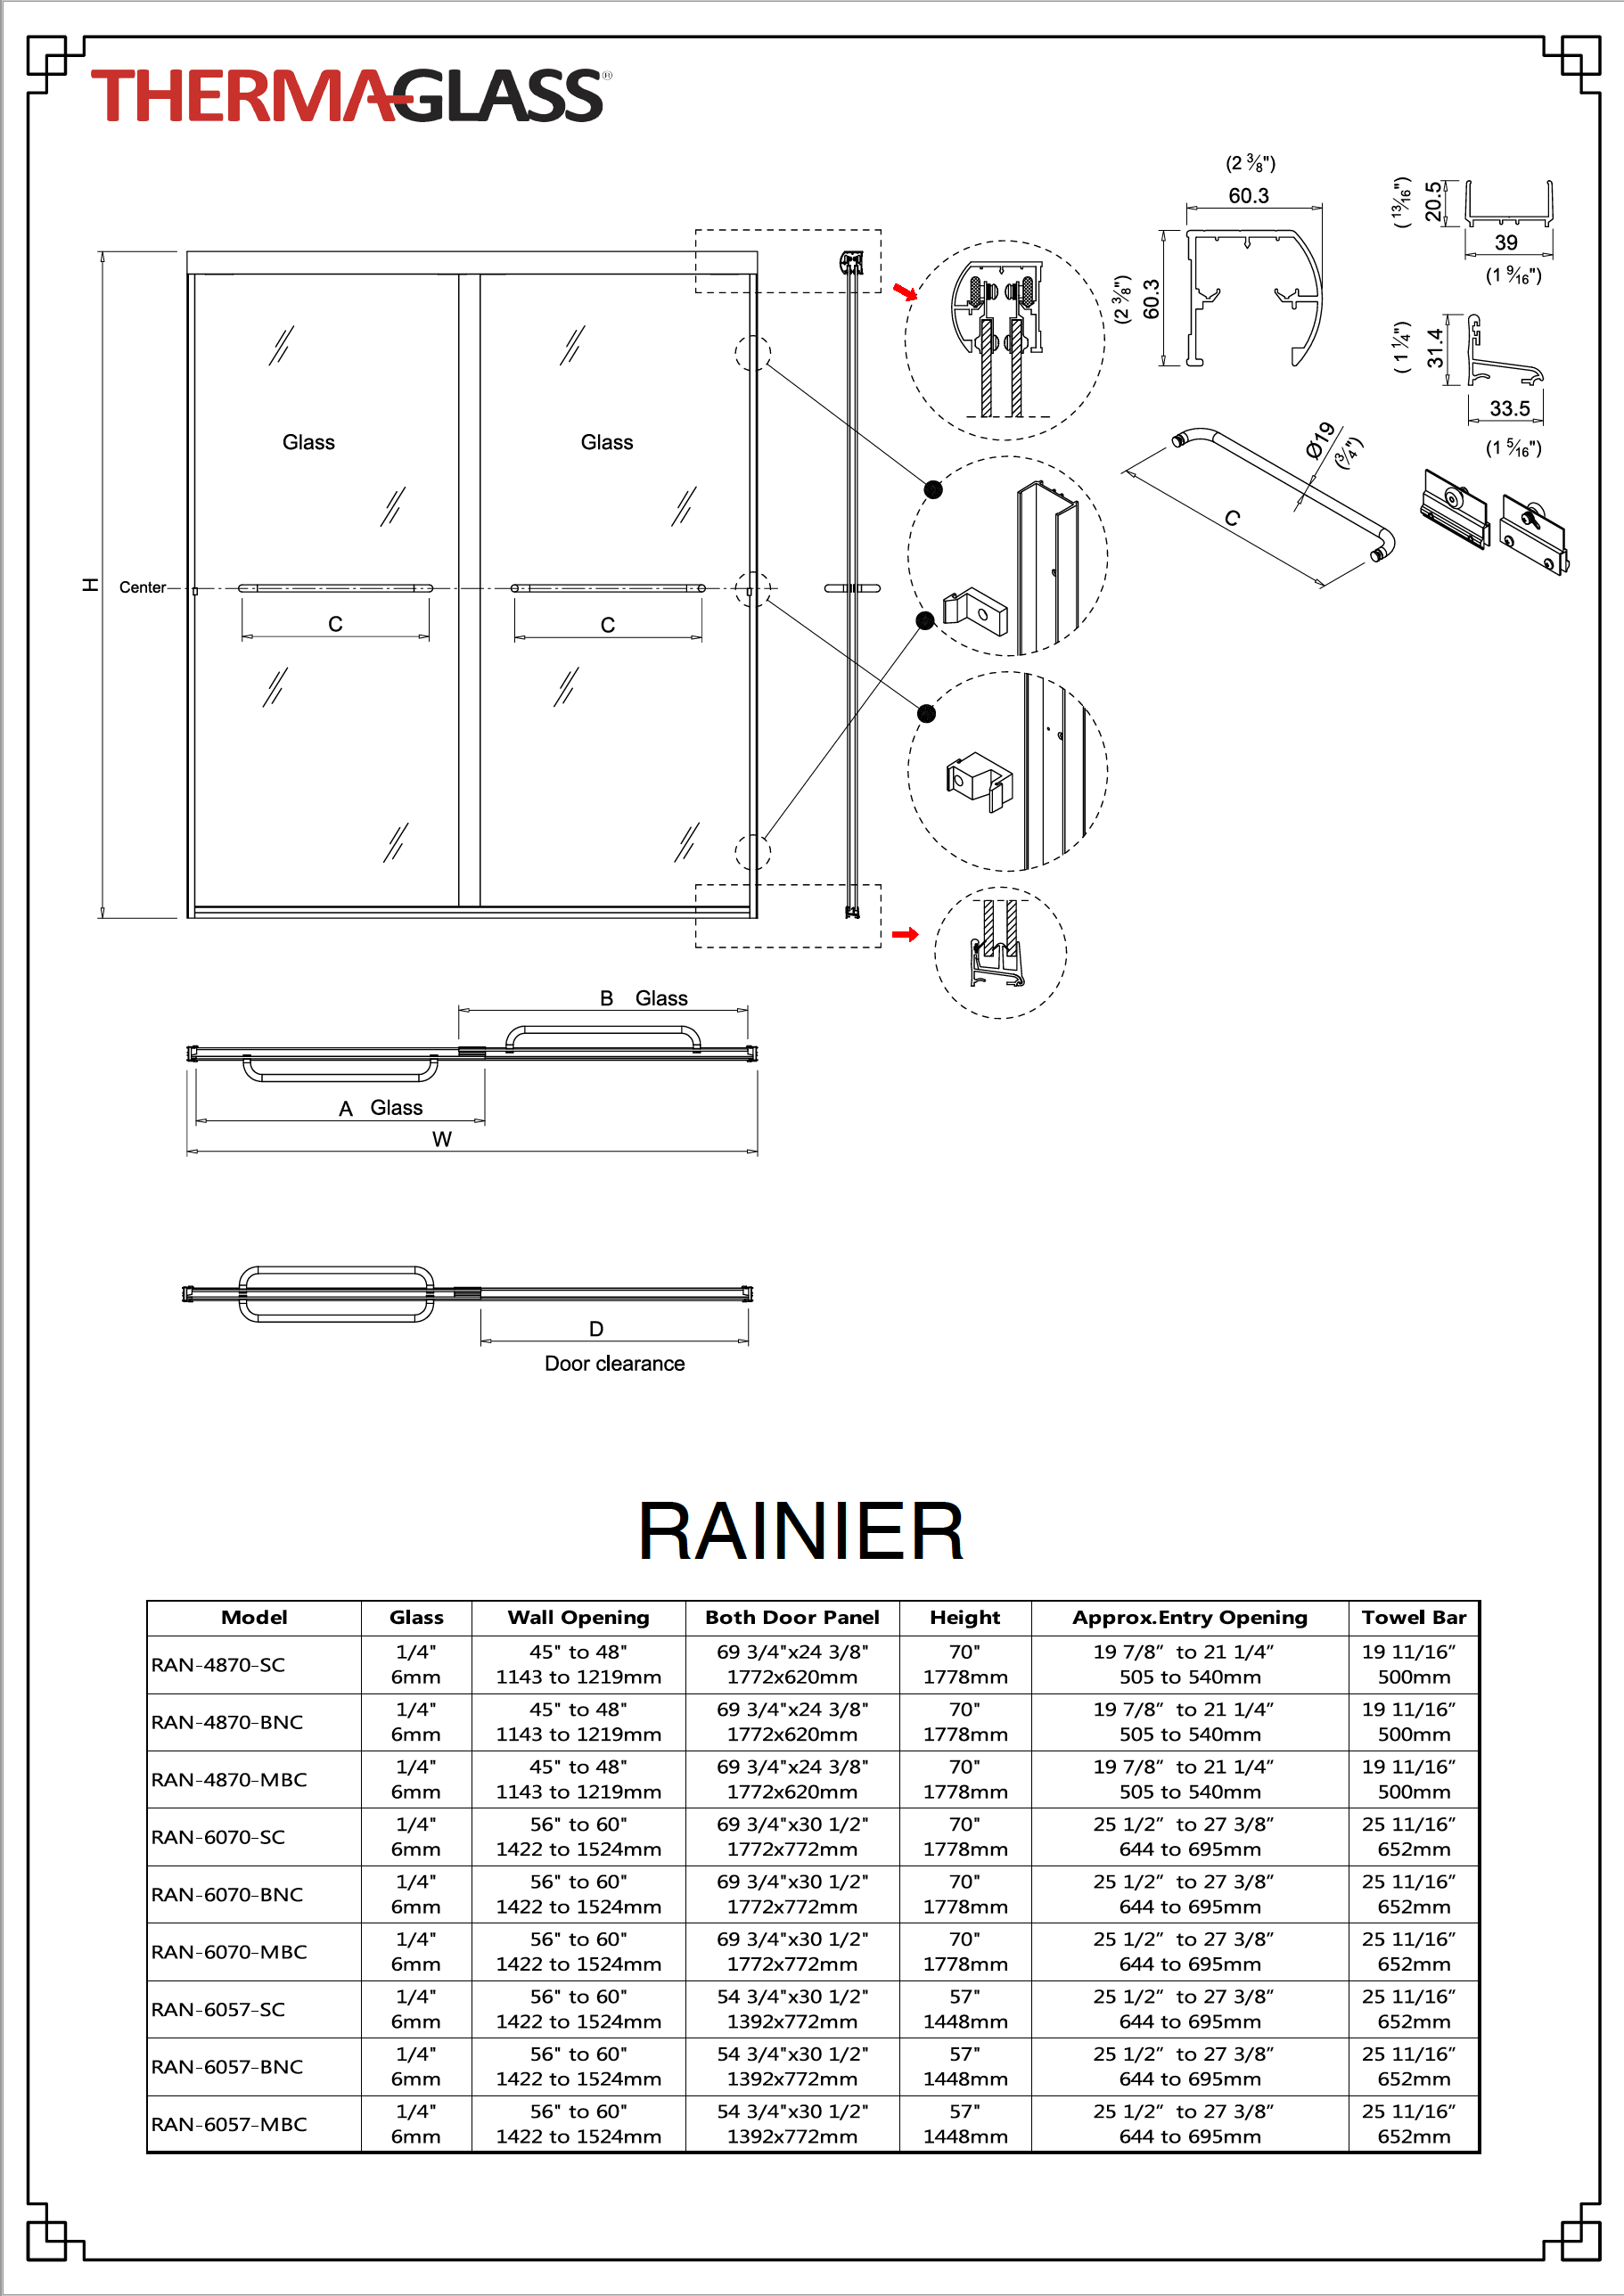 Rainier Shower Door Specification